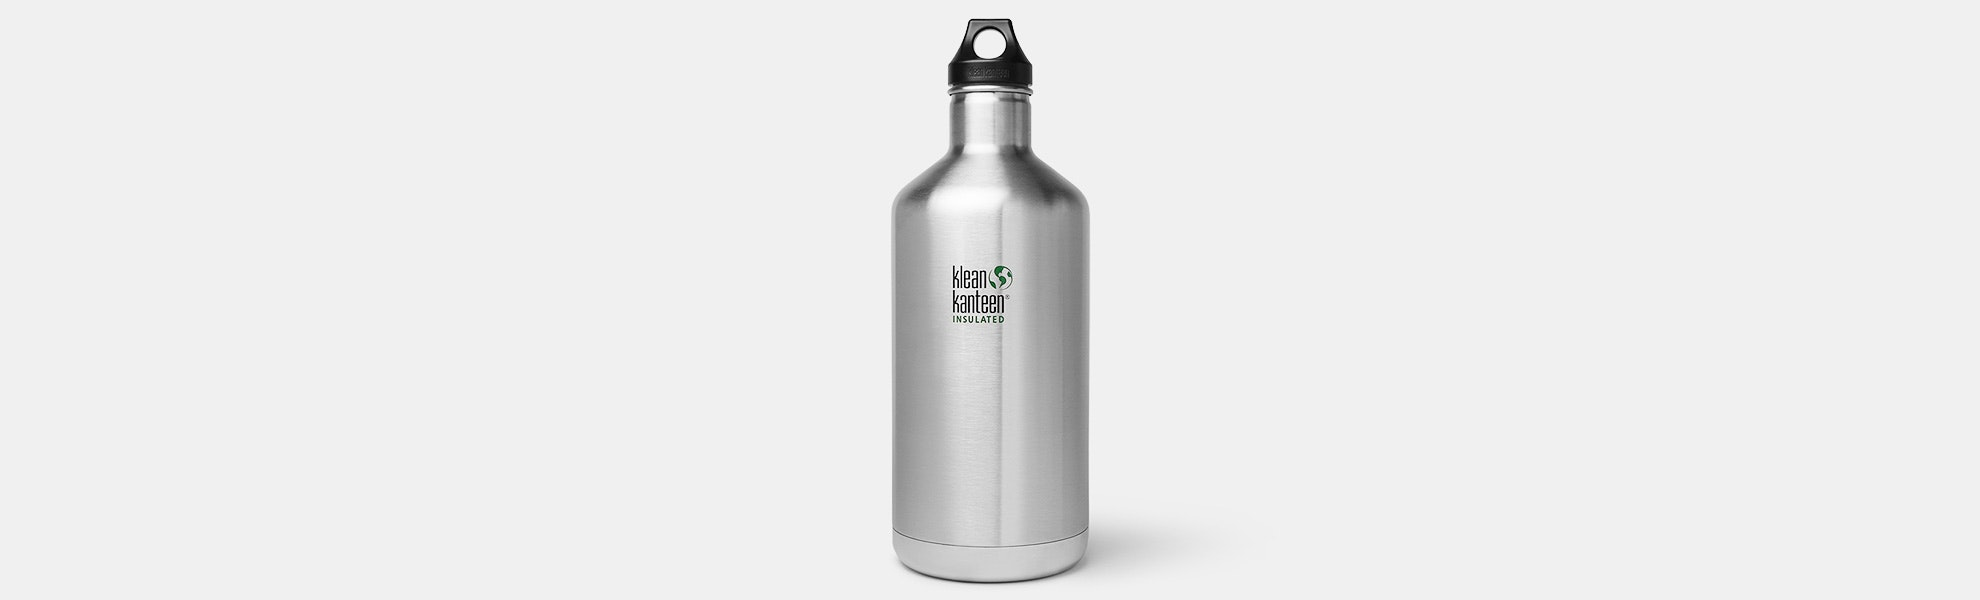 Klean Kanteen Insulated Classic 64-Ounce Bottle